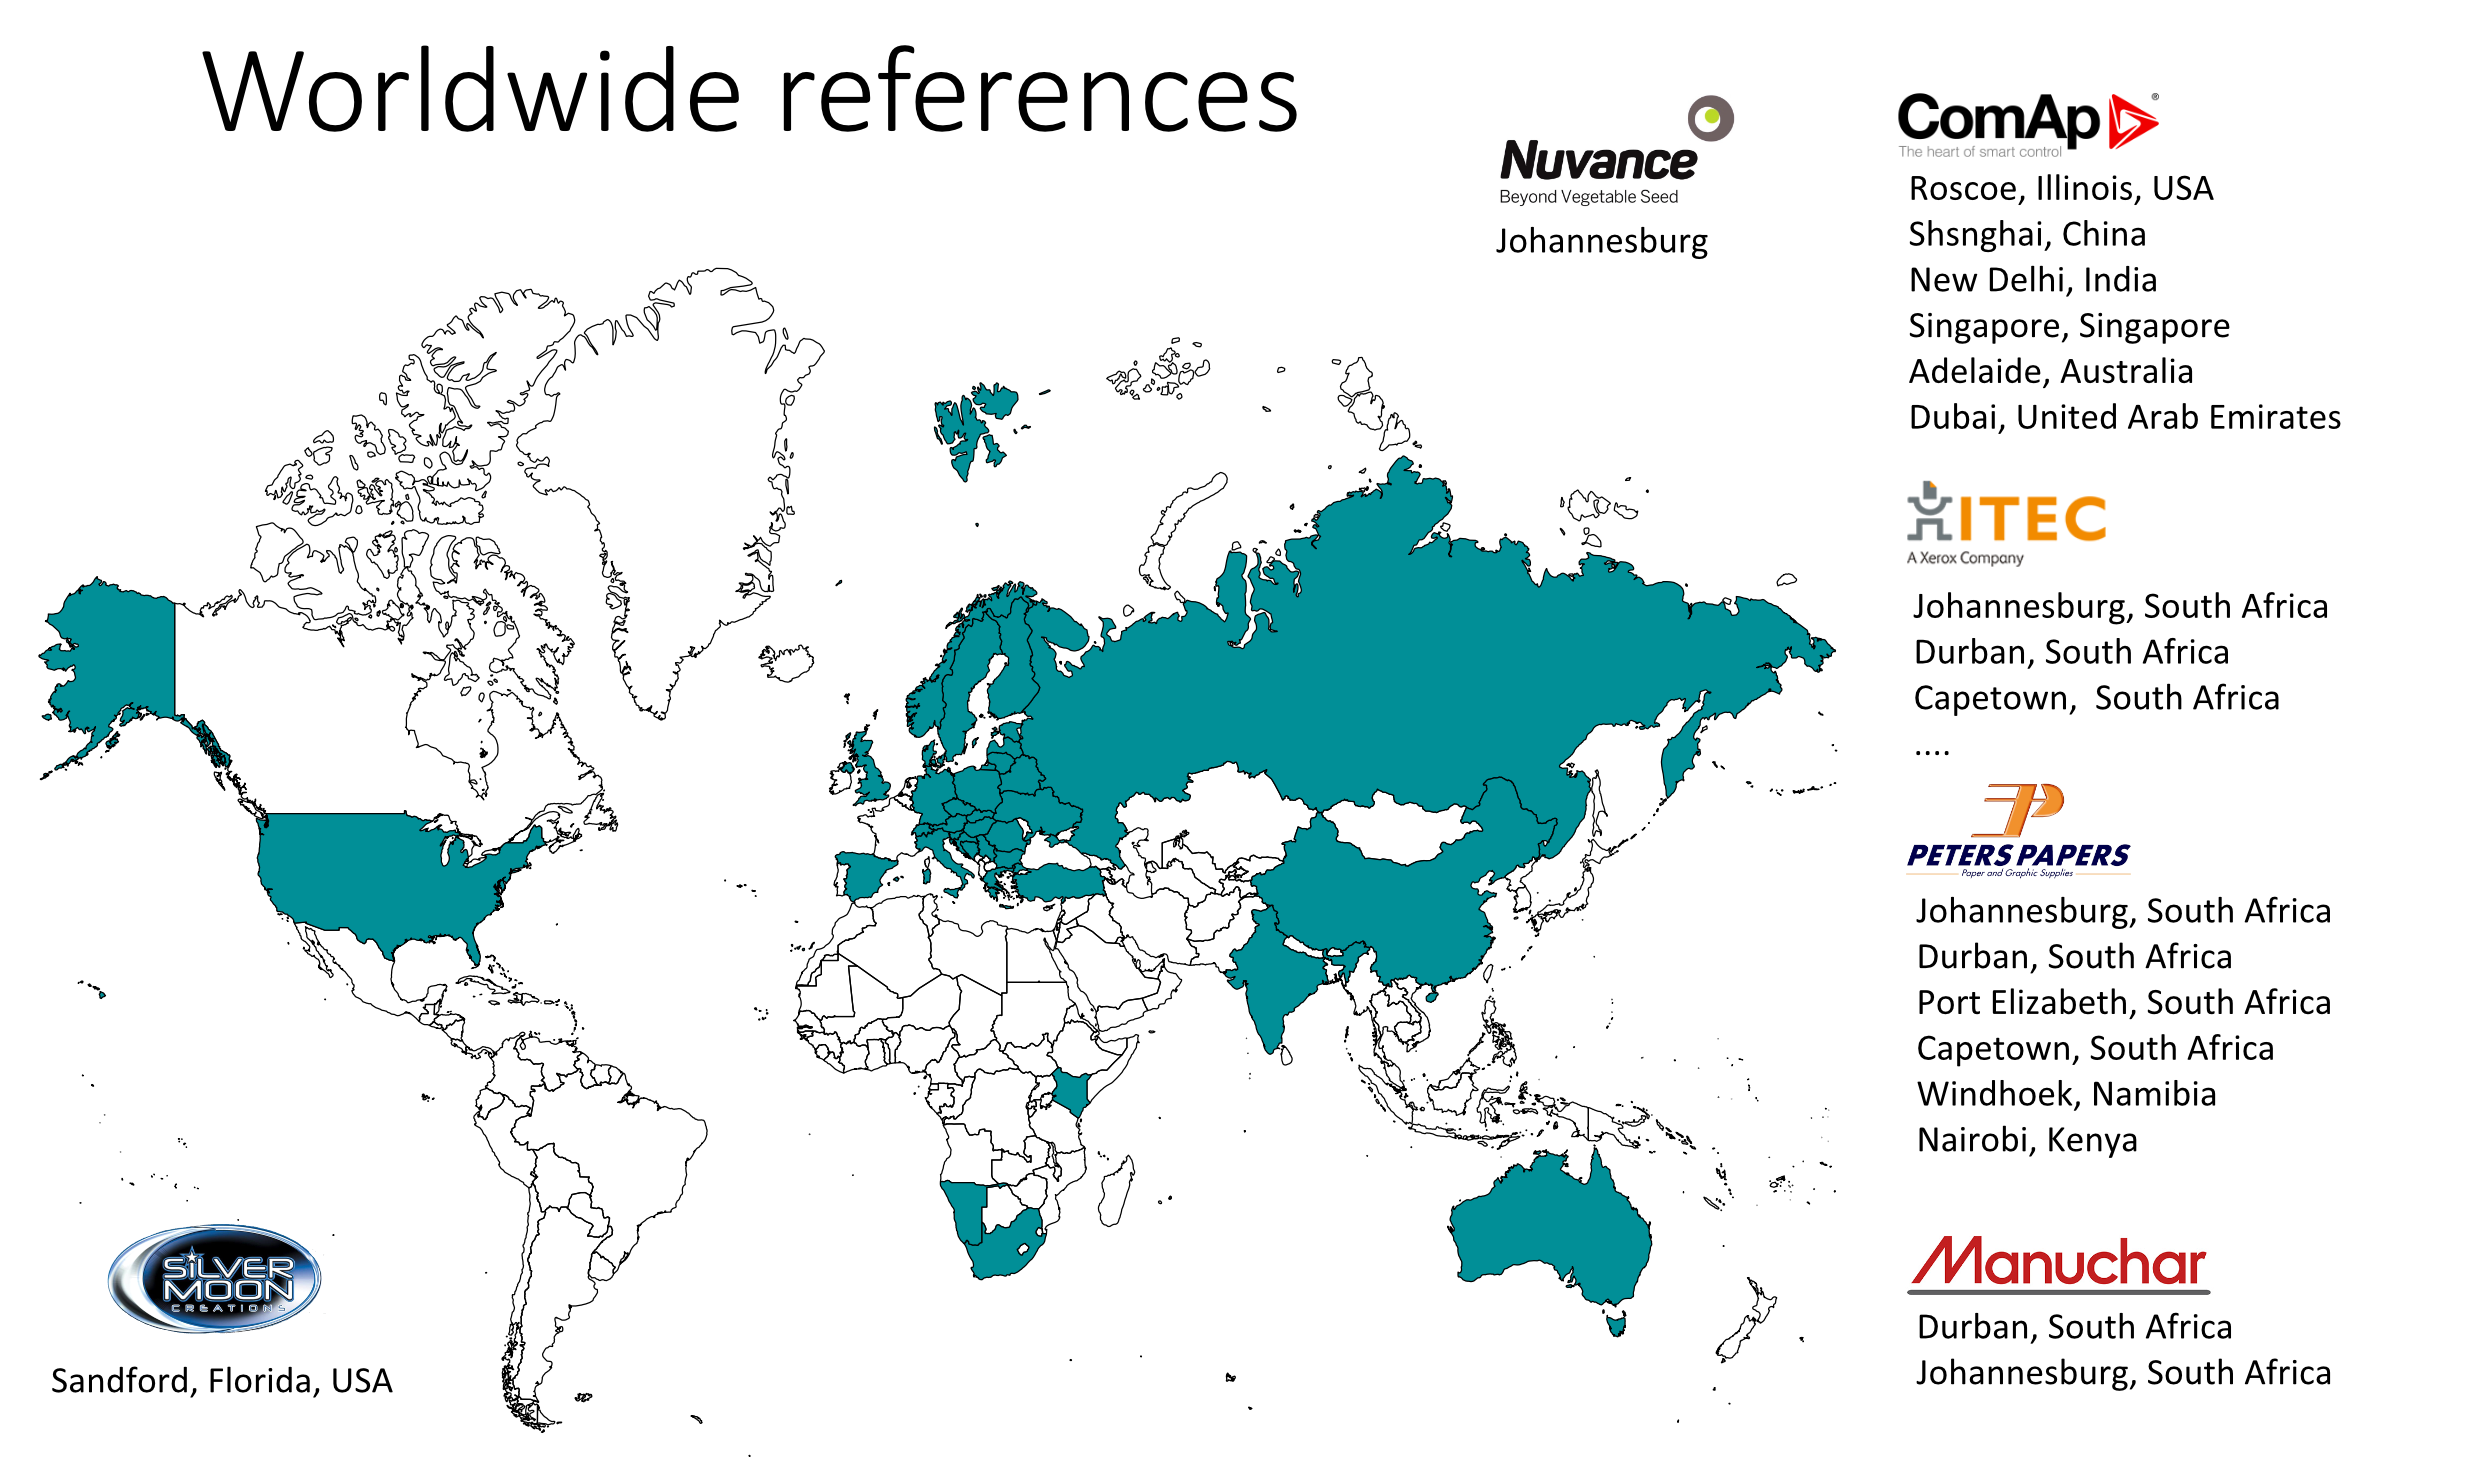 Worldwide references